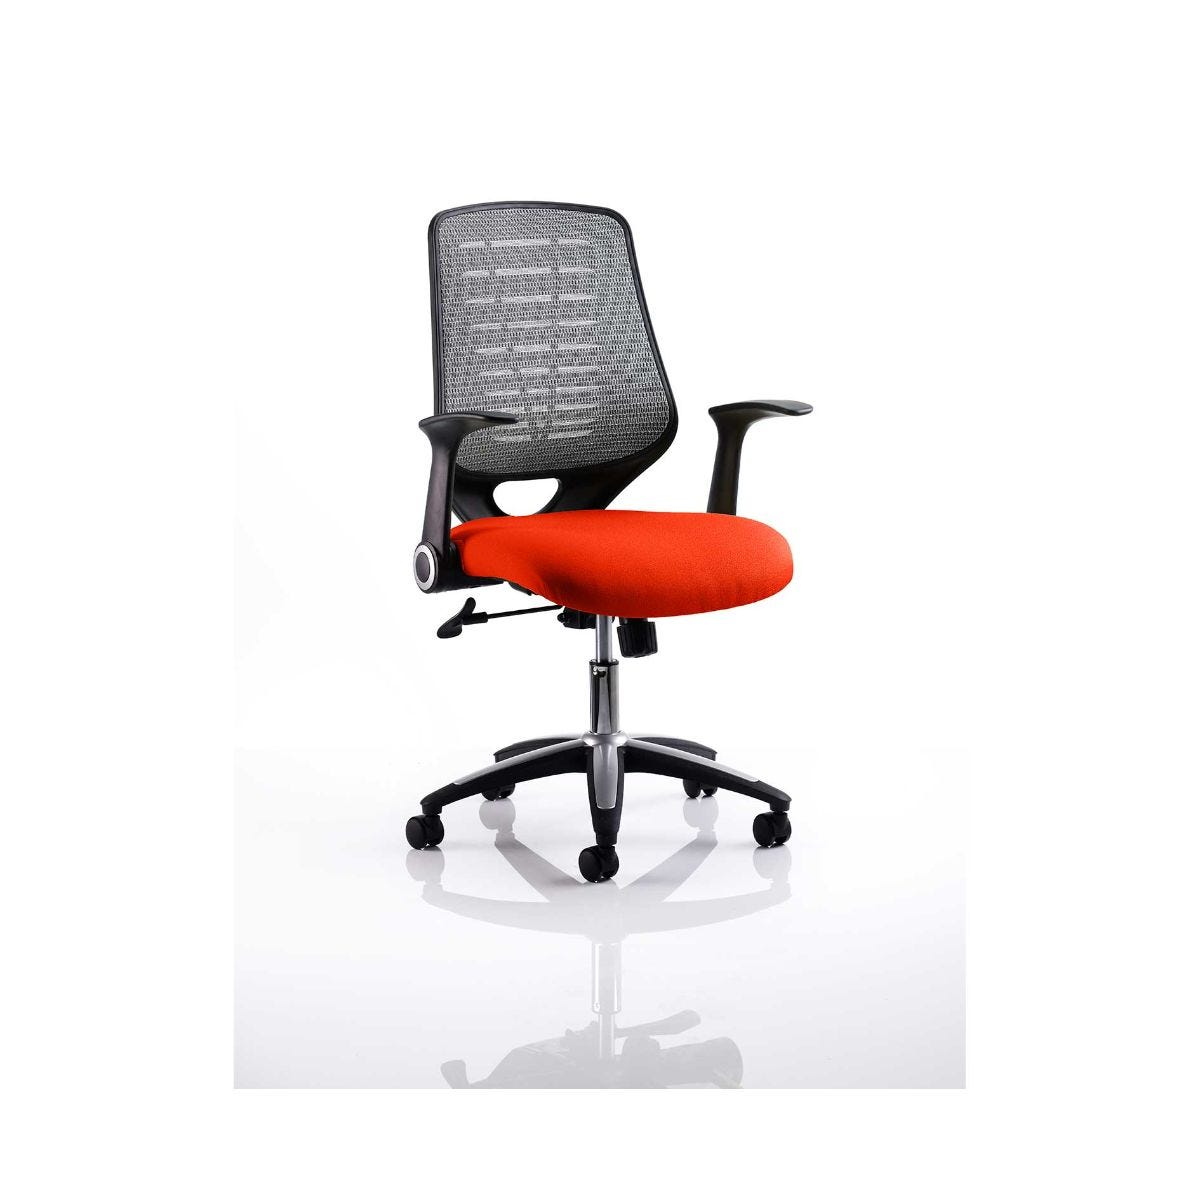 Relay Mesh Back Office Chair Silver, Tabasco